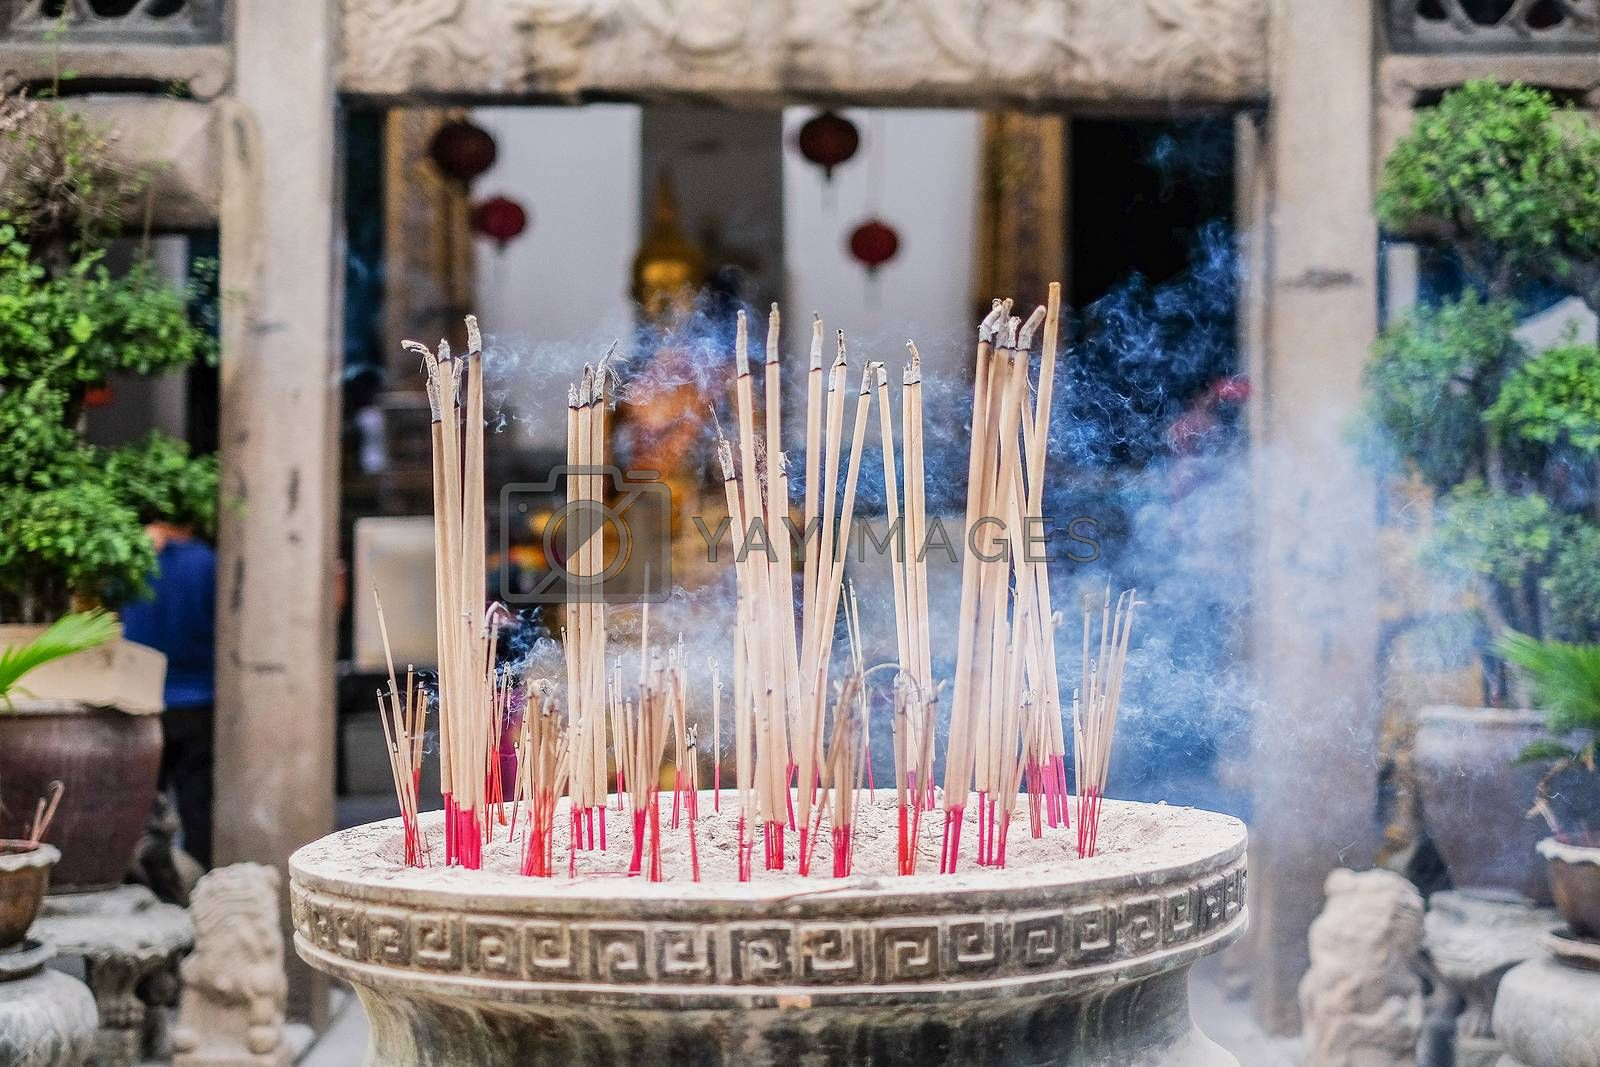 Incense sticks in ashes bucket in Temple Thialand  by Surasak